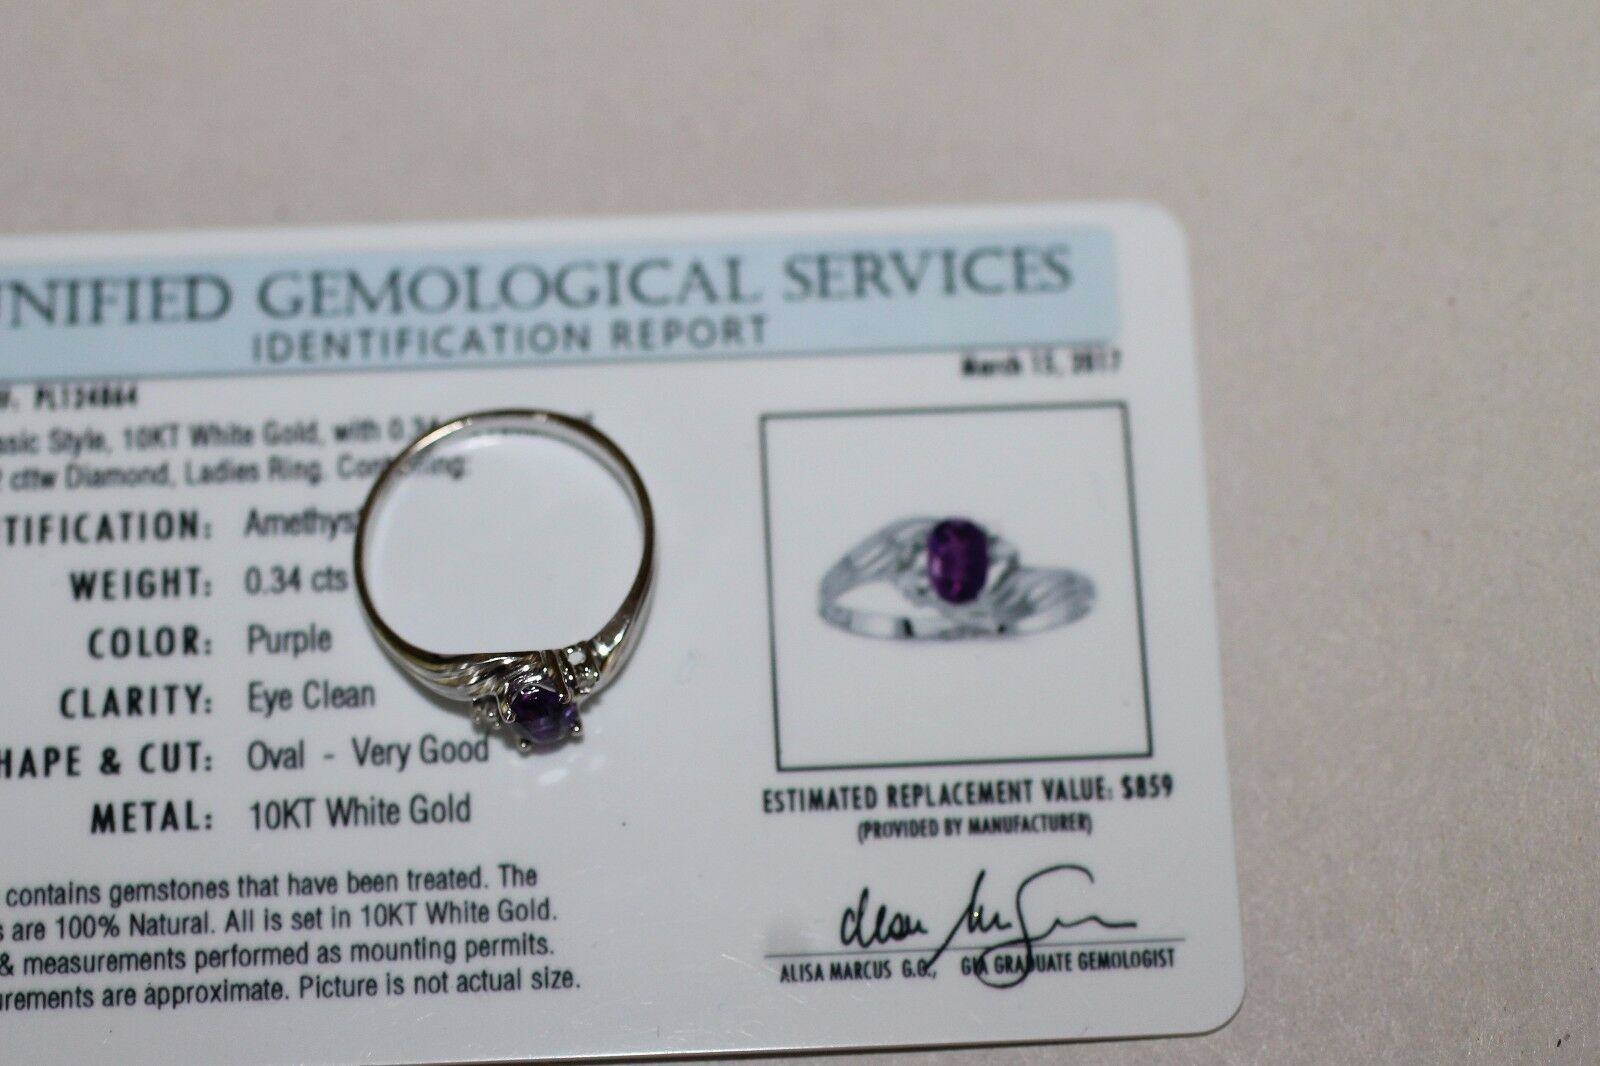 SLASHED PRICE AMETHYST .34 CTS.  RING ON 10 KT. WHITE gold OVAL, VALUE  849